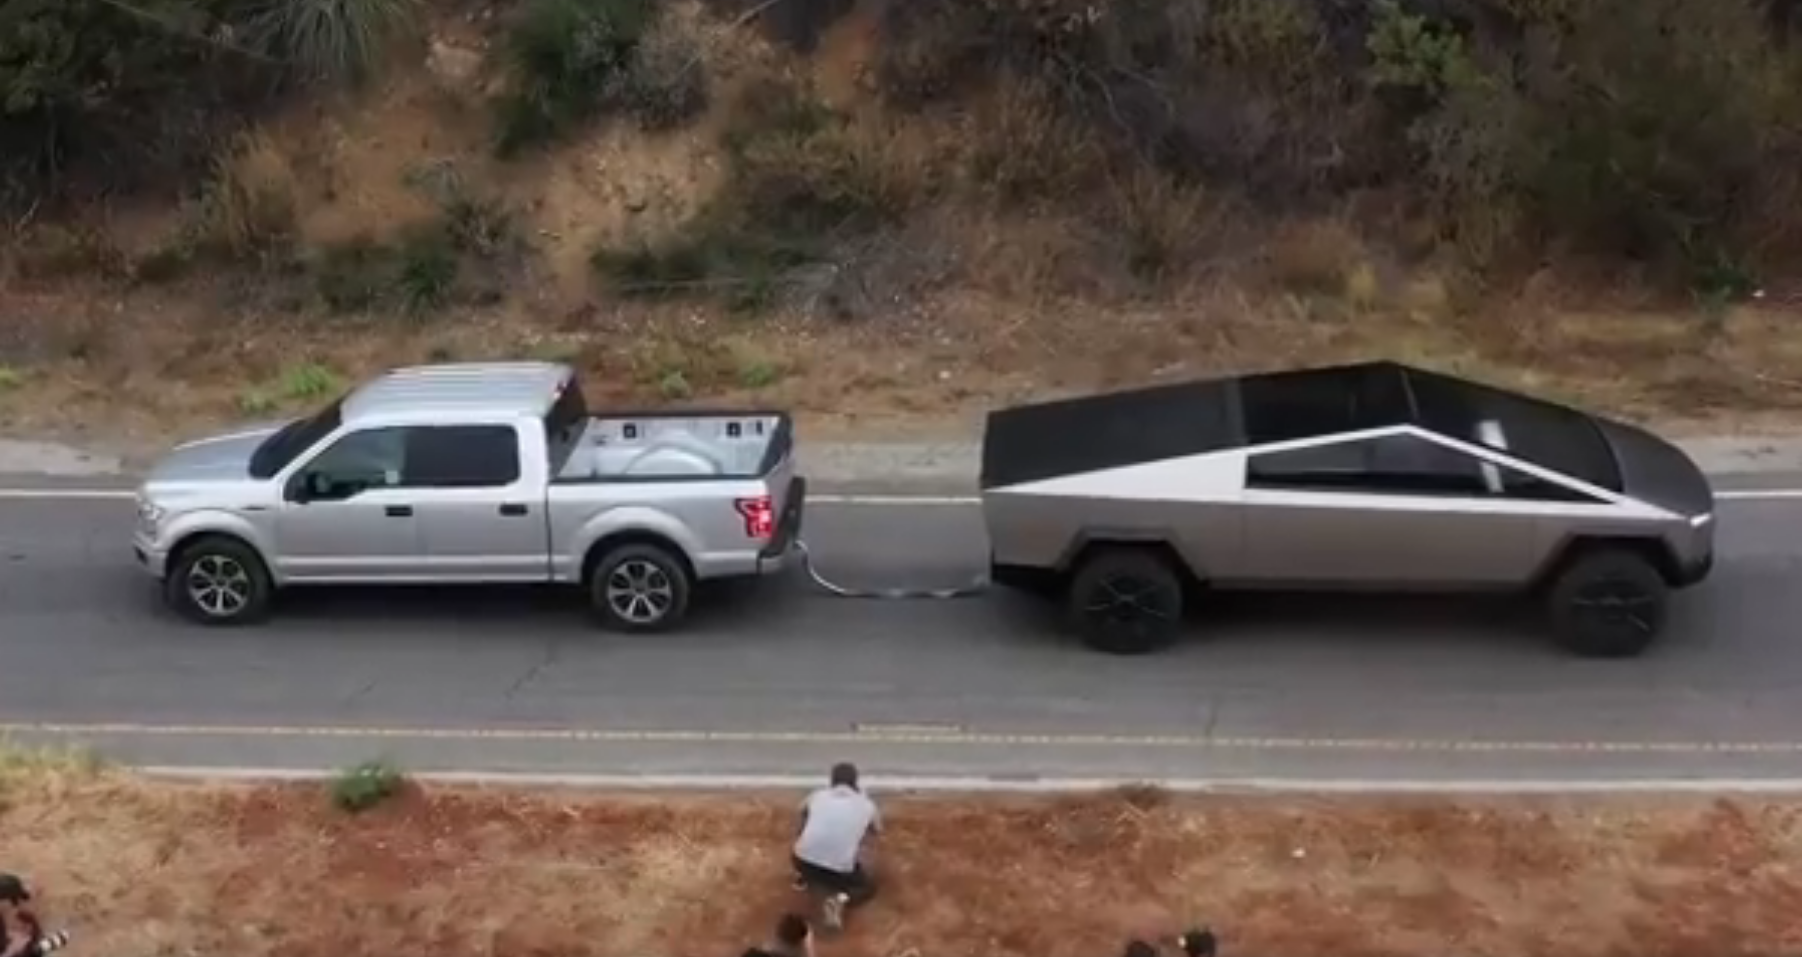 Cybertruck vs Ford F-150 tug of war